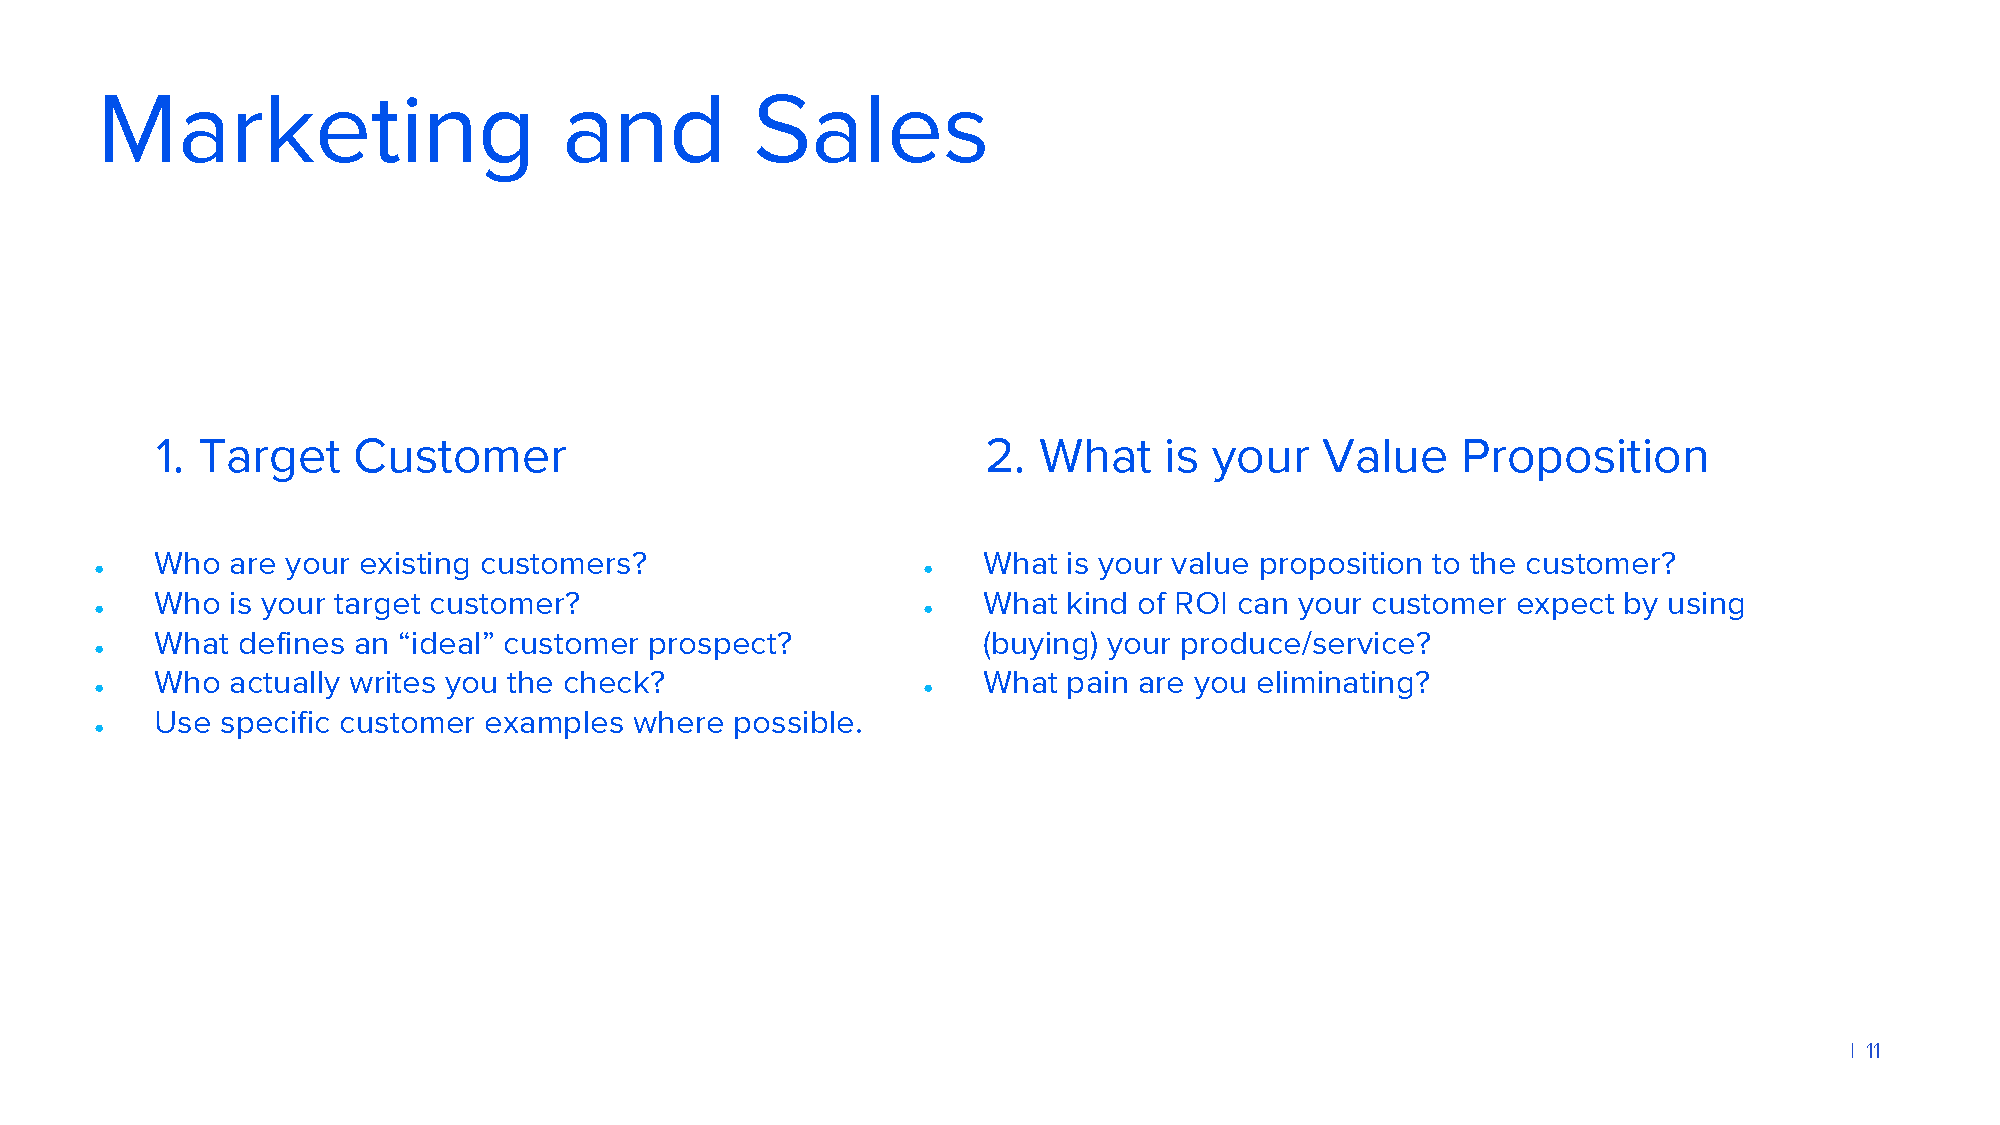 VC Outline_Page_11.png